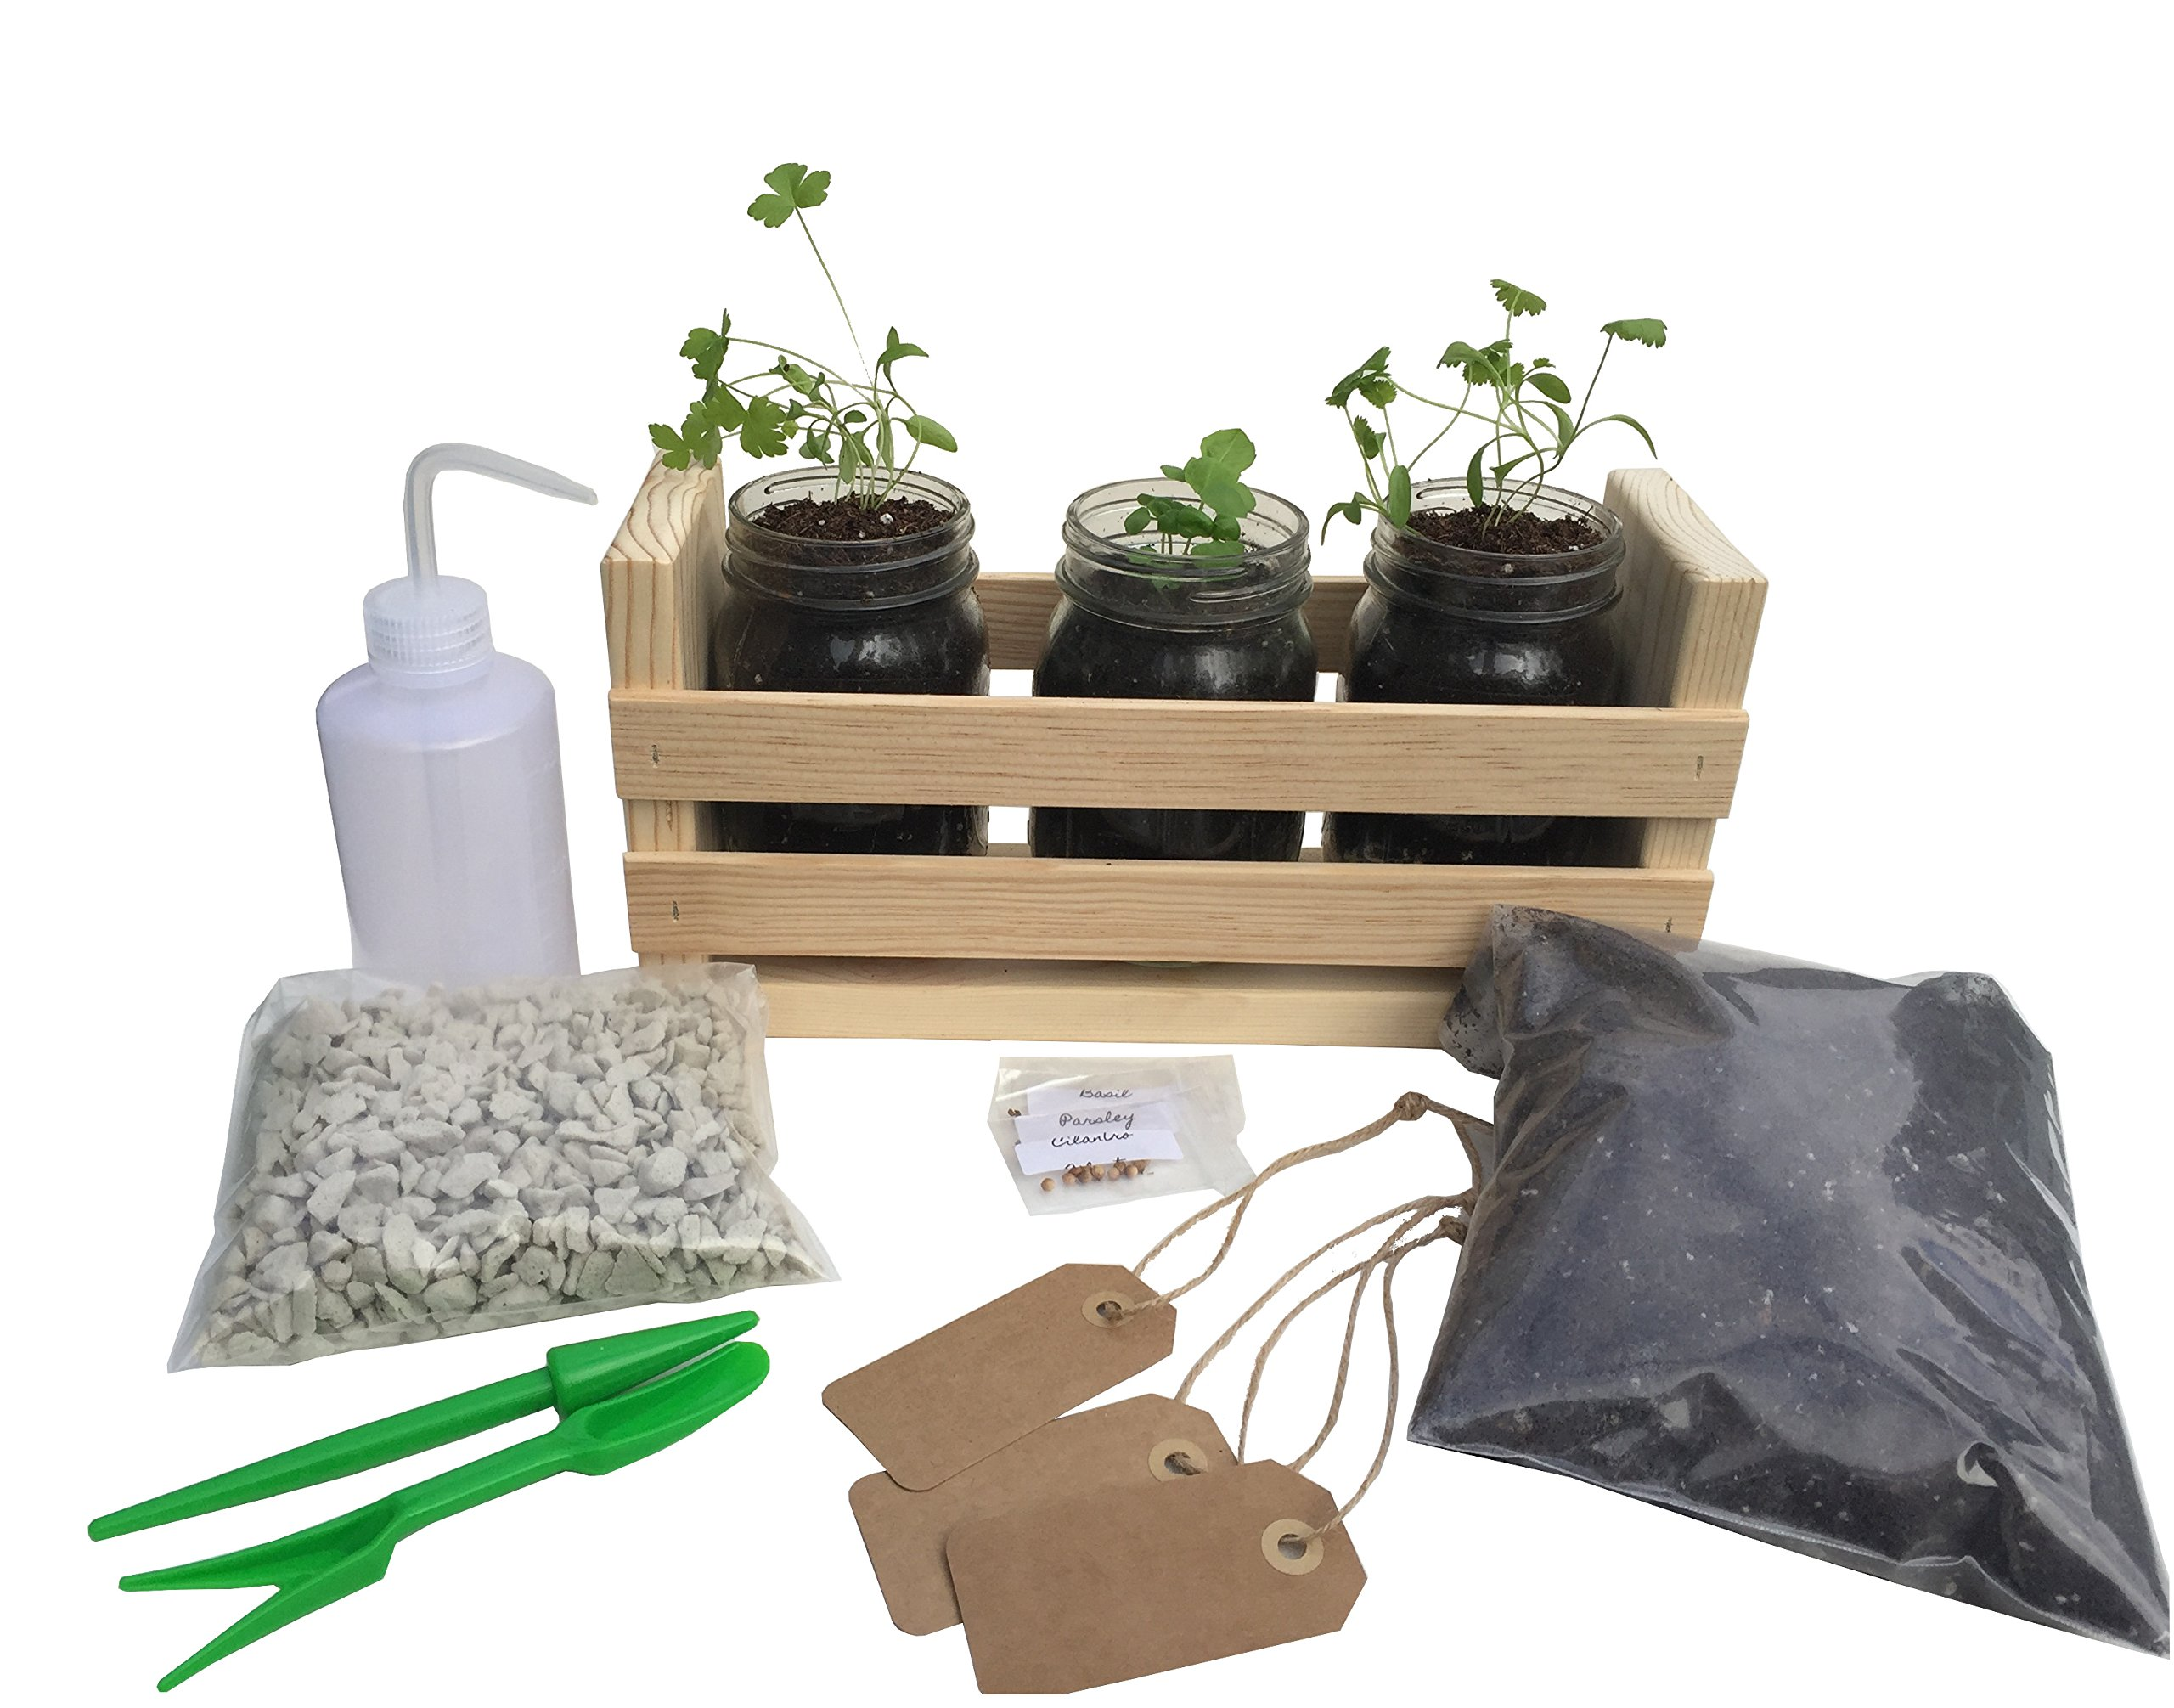 Indoor Herb Garden Premium Kit -Great for Growing an Indoor Herb Garden, Simple Kit Includes Everything You Need to Plant and Grow Delicious Culinary Herbs Today!